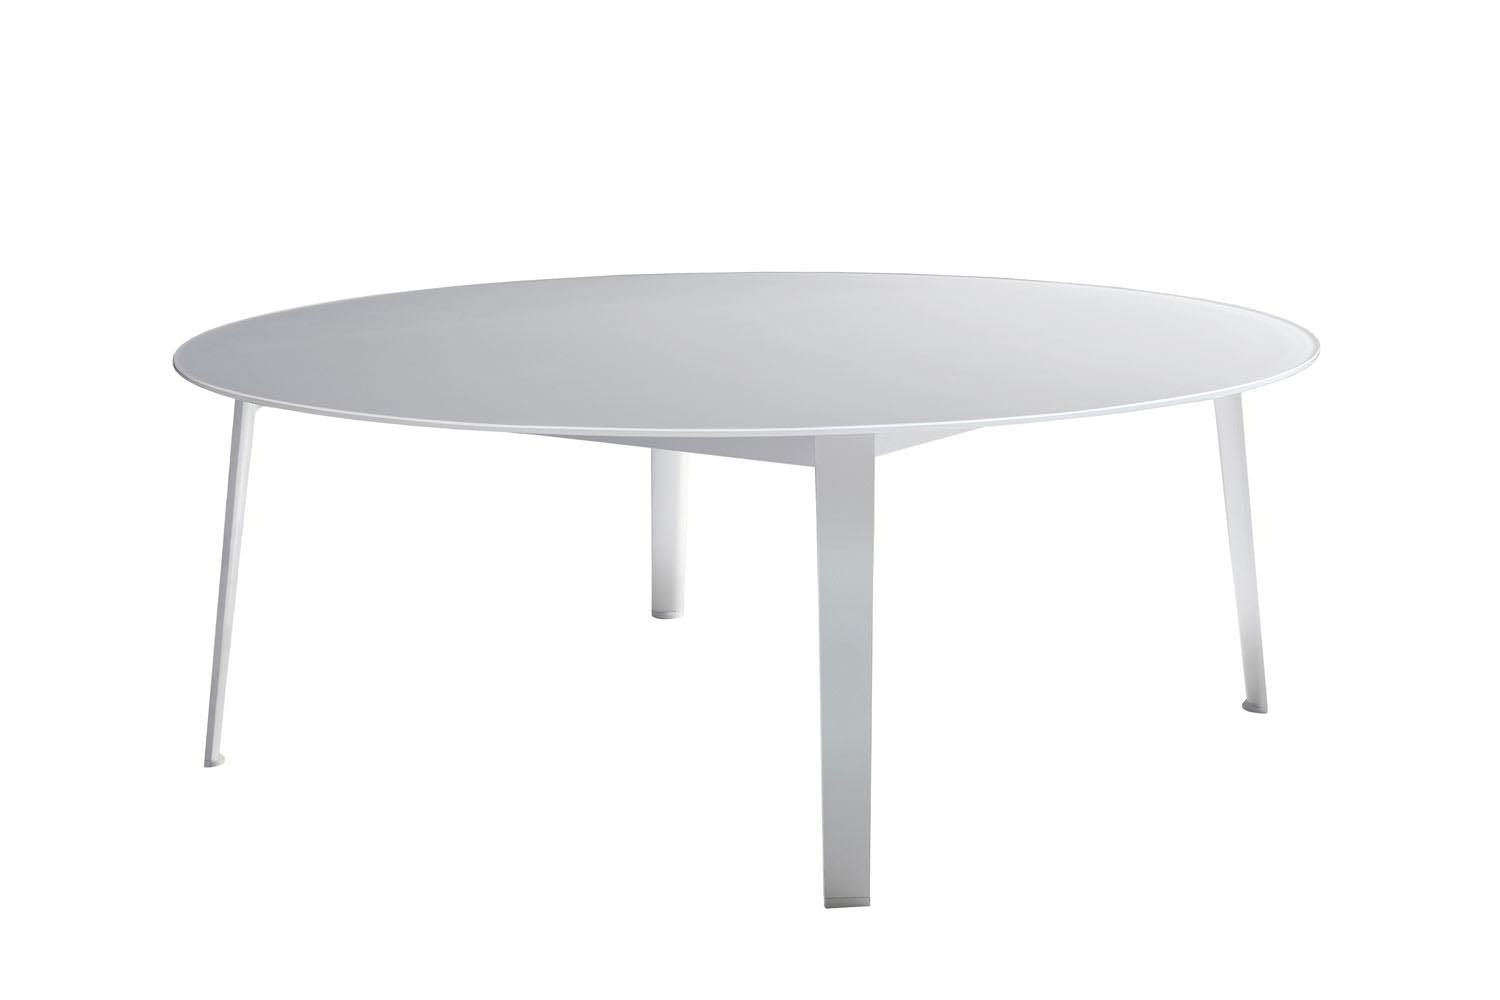 Gelso Table by Antonio Citterio for B&B Italia